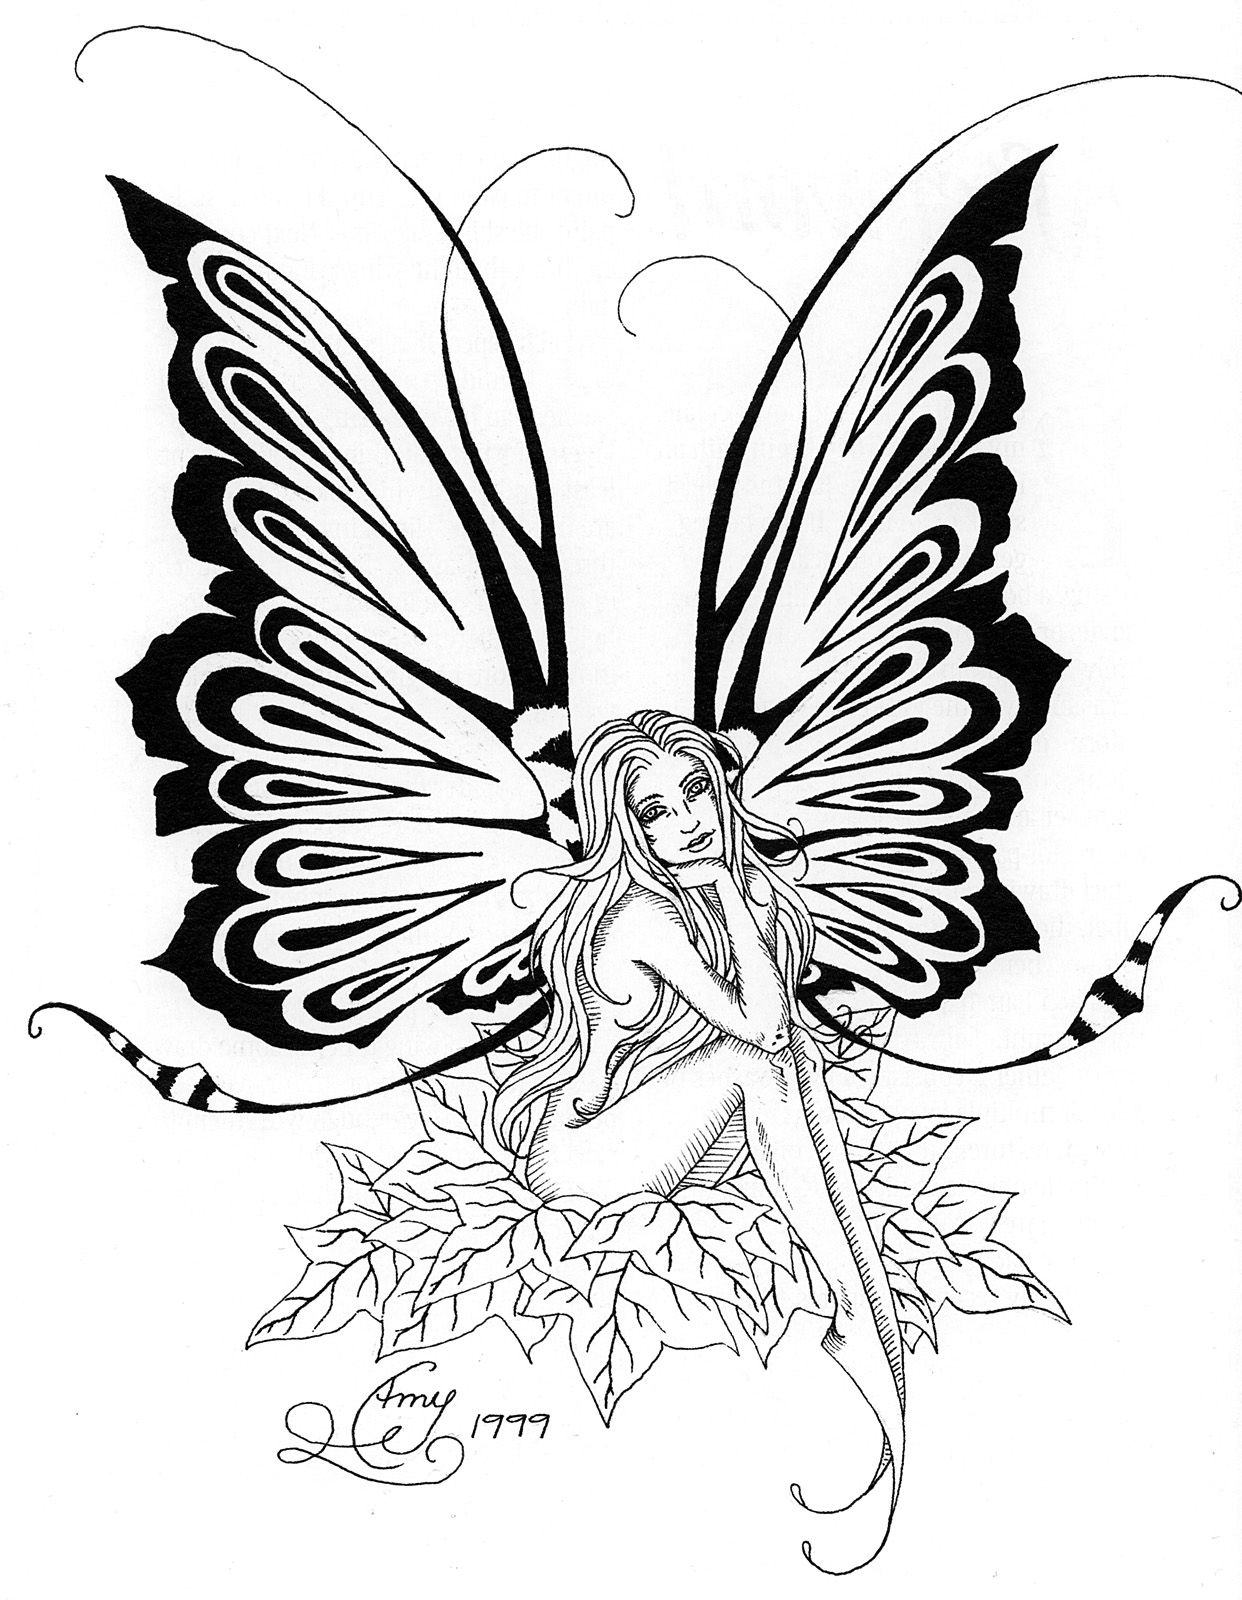 Amy Brown Fairy Myth Mythical Mystical Legend Elf Fairy Fae Wings Fantasy Elves Faries Sprite Nymph Pixie Fa Fairy Coloring Pages Coloring Pages Fairy Coloring